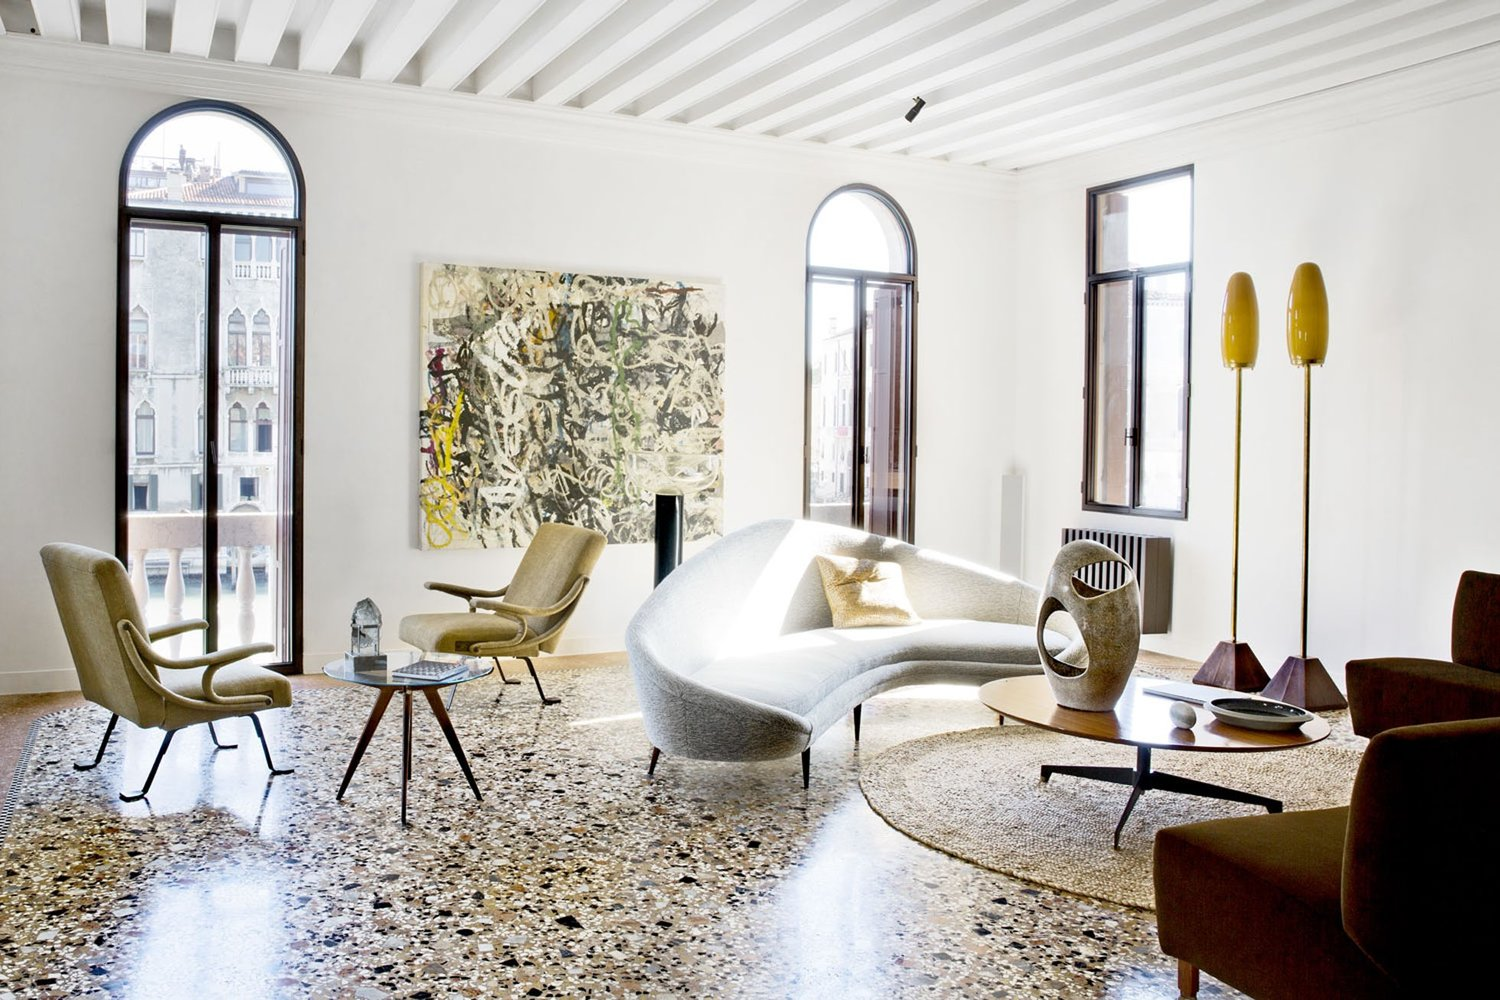 Terrazzo Passing Trend Or Design Staple Envy Interior